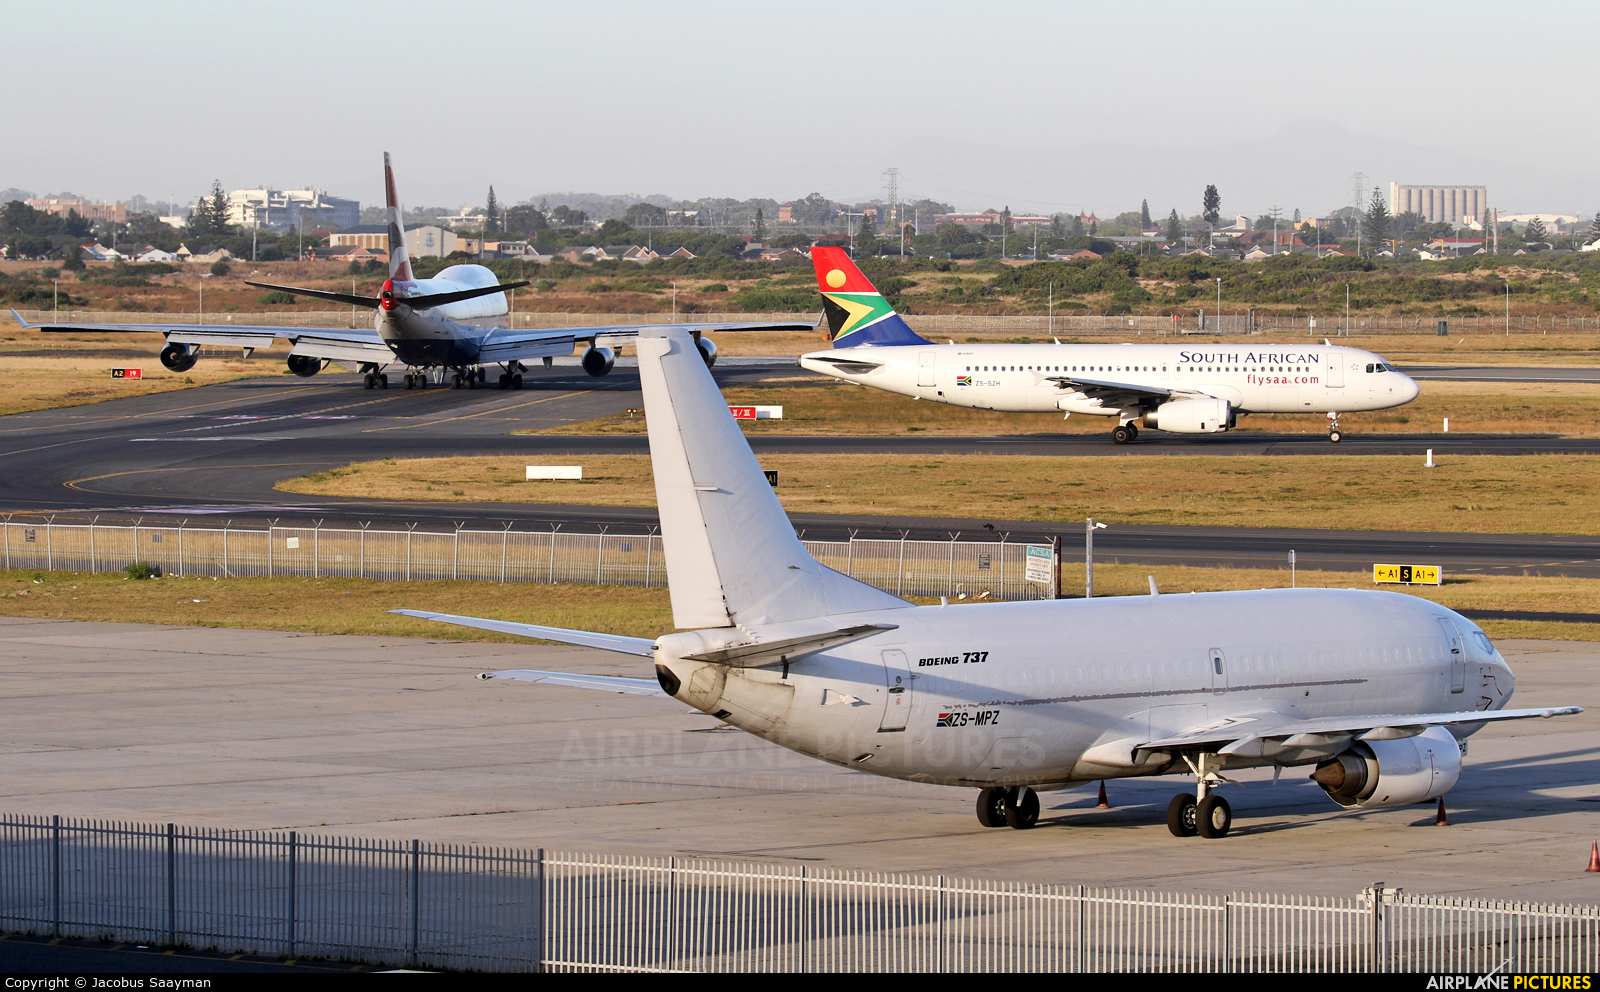 Africa Charter Airline ZS-MPZ aircraft at Cape Town Intl